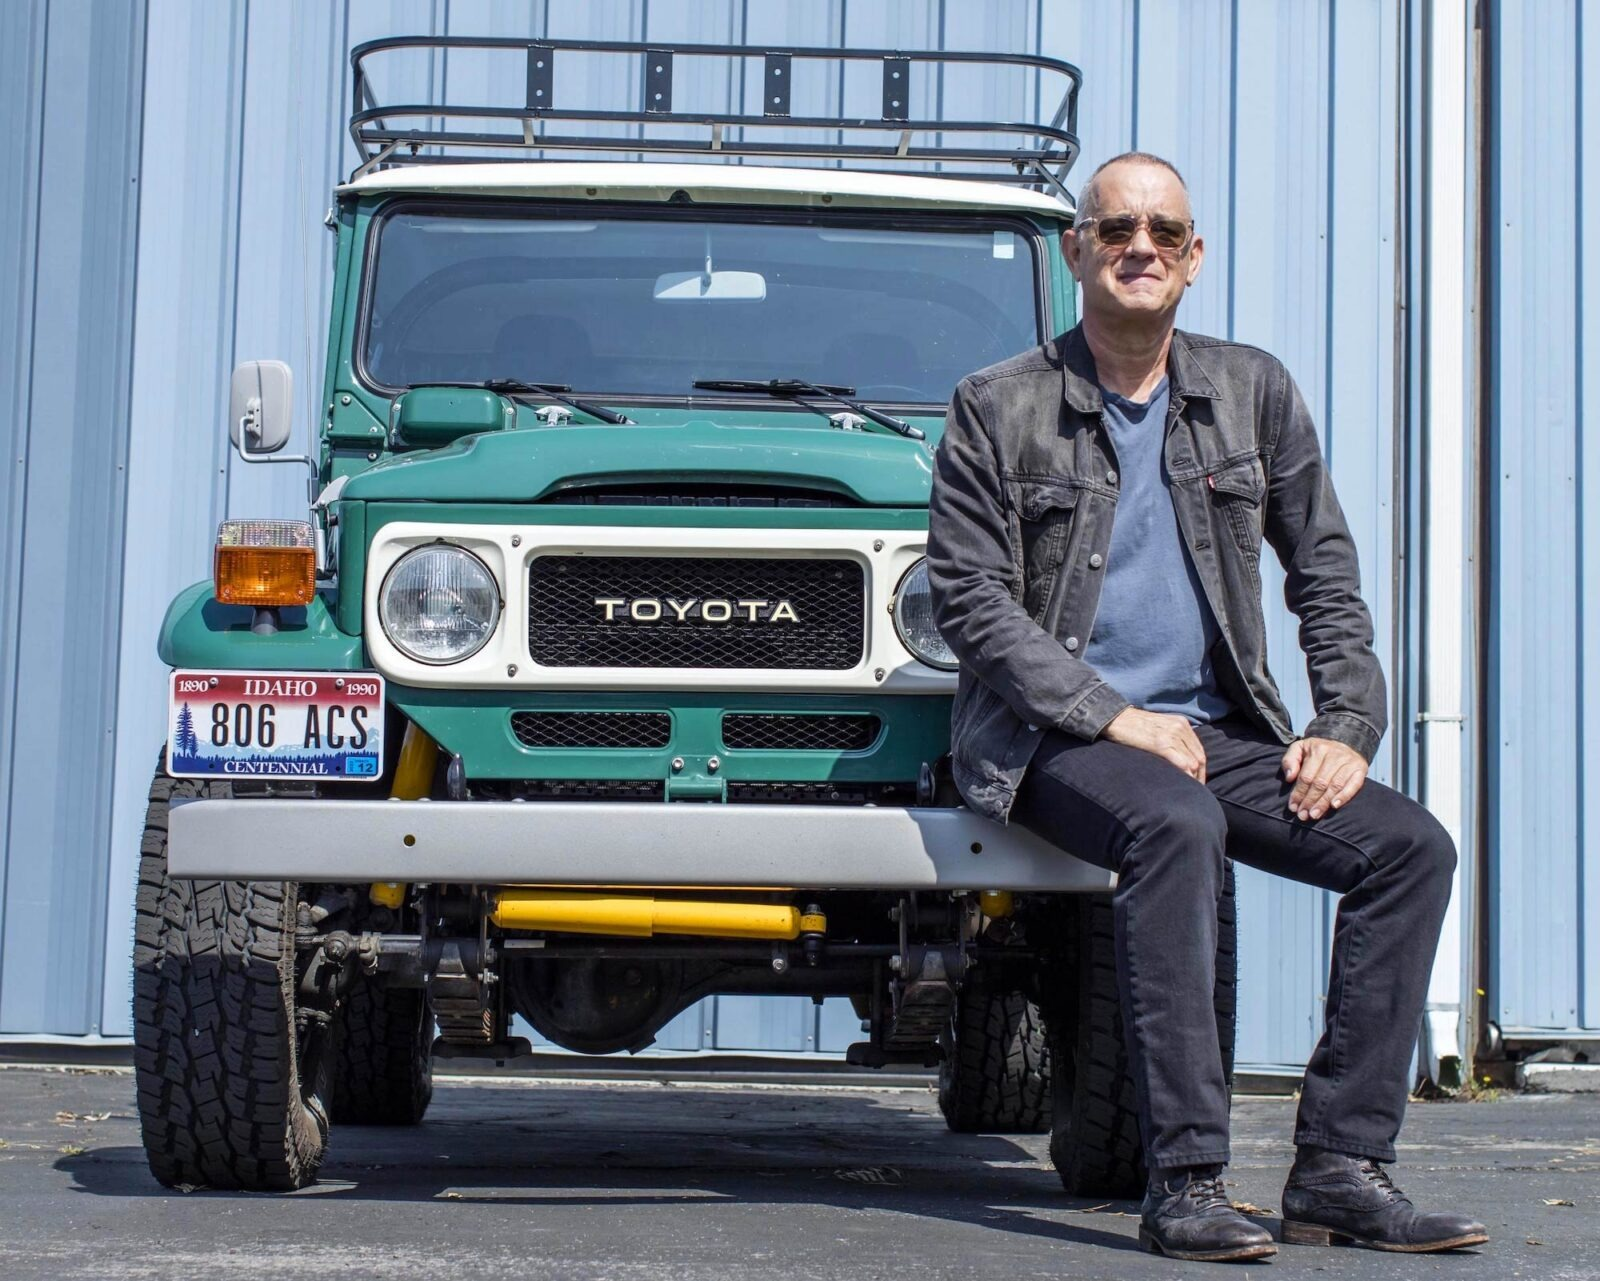 If you were looking for a celebrity car to invest in, check out what Tom Hanks has to offer on Bonhams Auctions. The latest lot is a tuned FJ40 Toyota Land Cruiser.